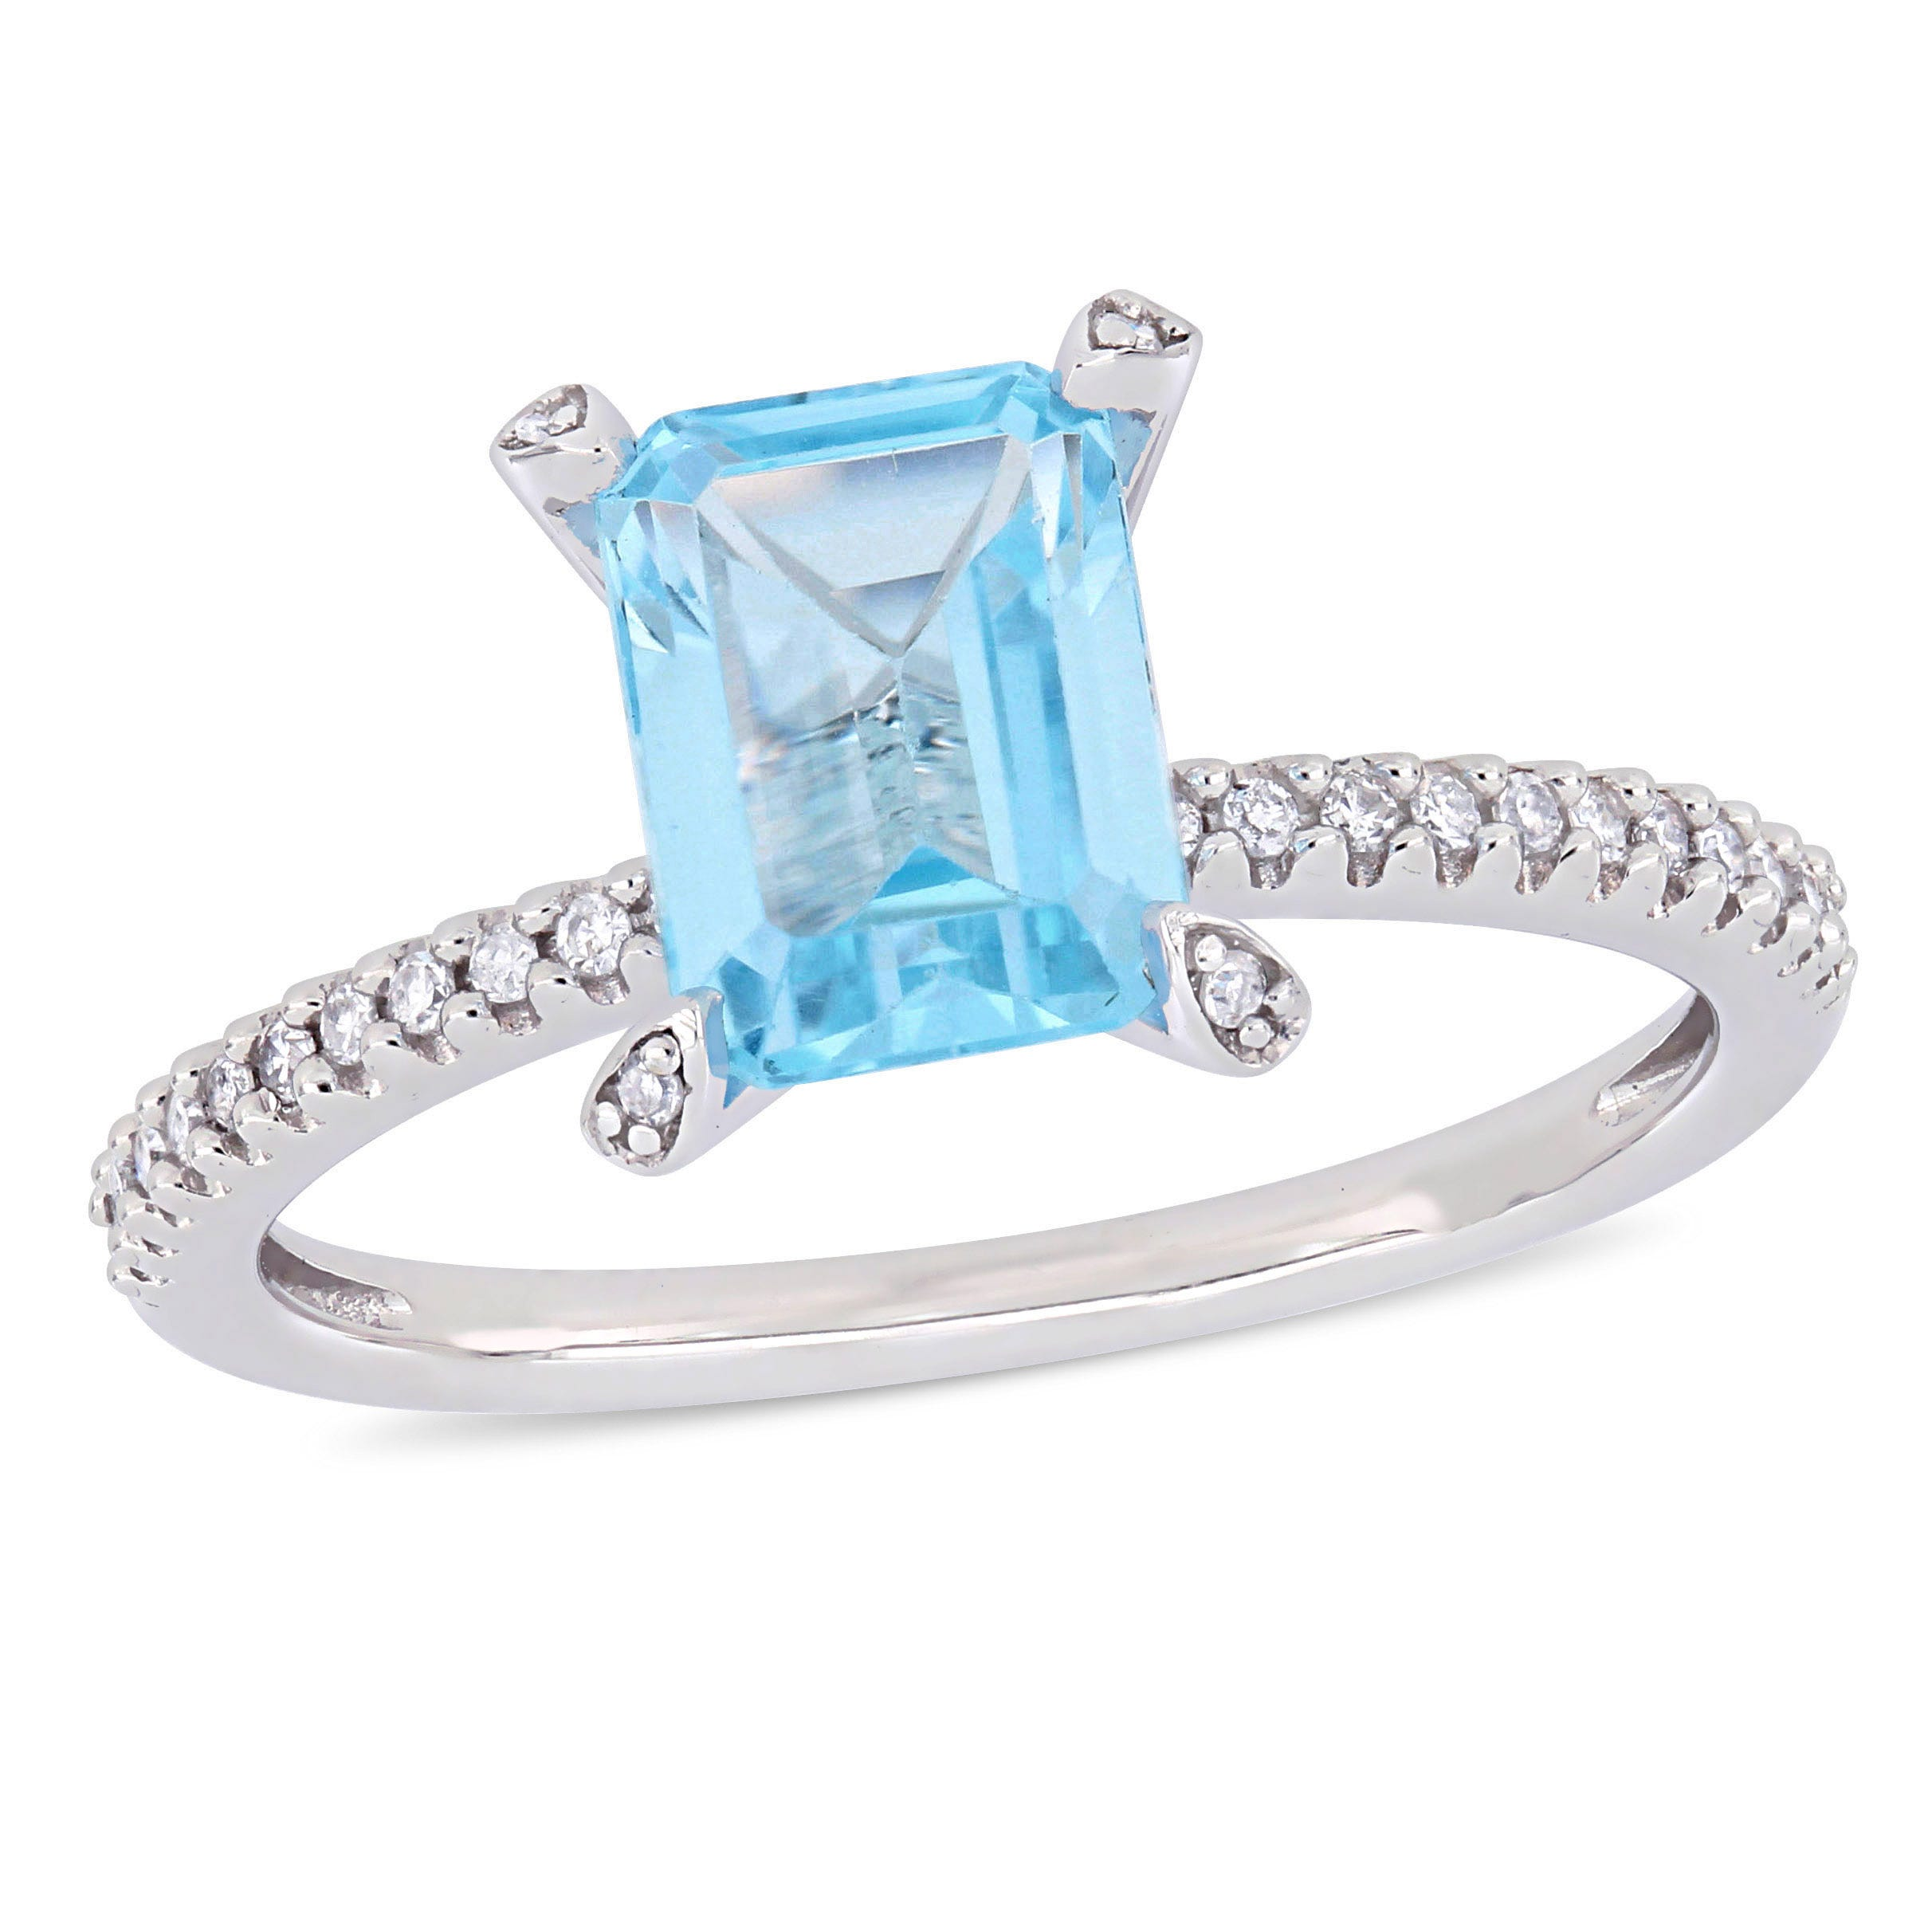 Emerald-Cut Blue Topaz Solitaire Engagement Ring in 10k White Gold